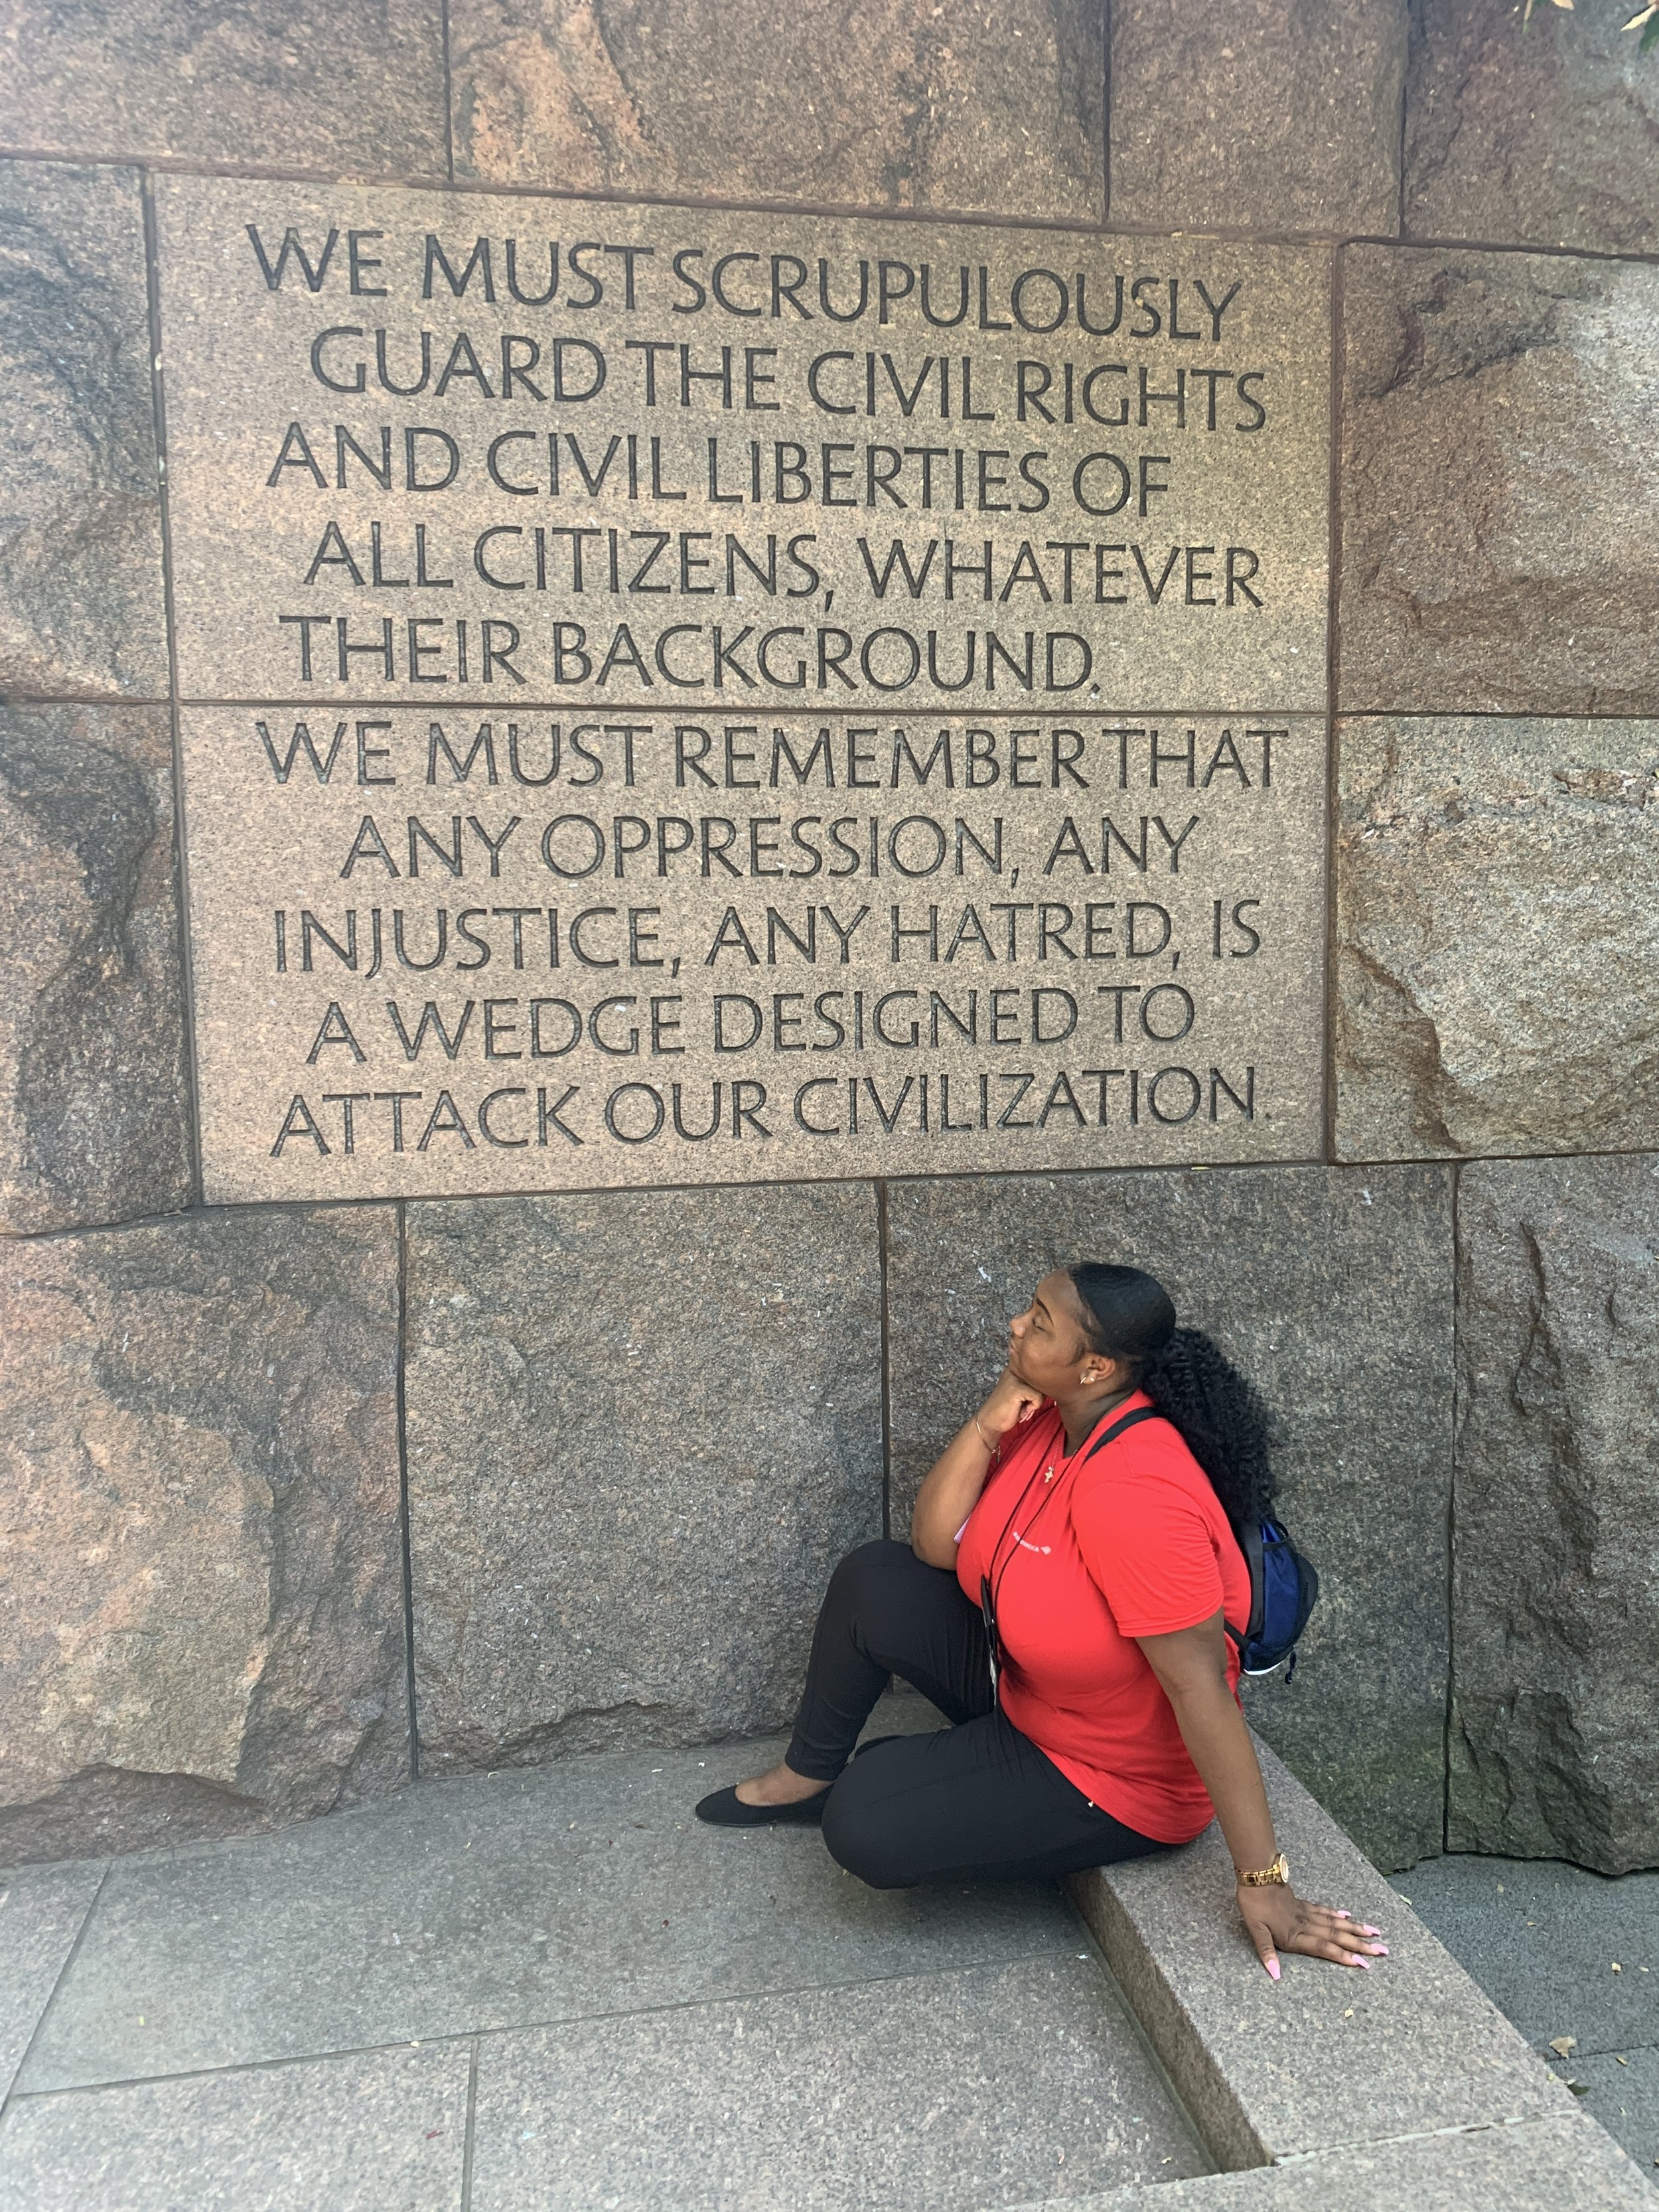 Jasmin in front of a quote on guarding civil rights and liberties, at the FDR memorial in Washington, D.C.